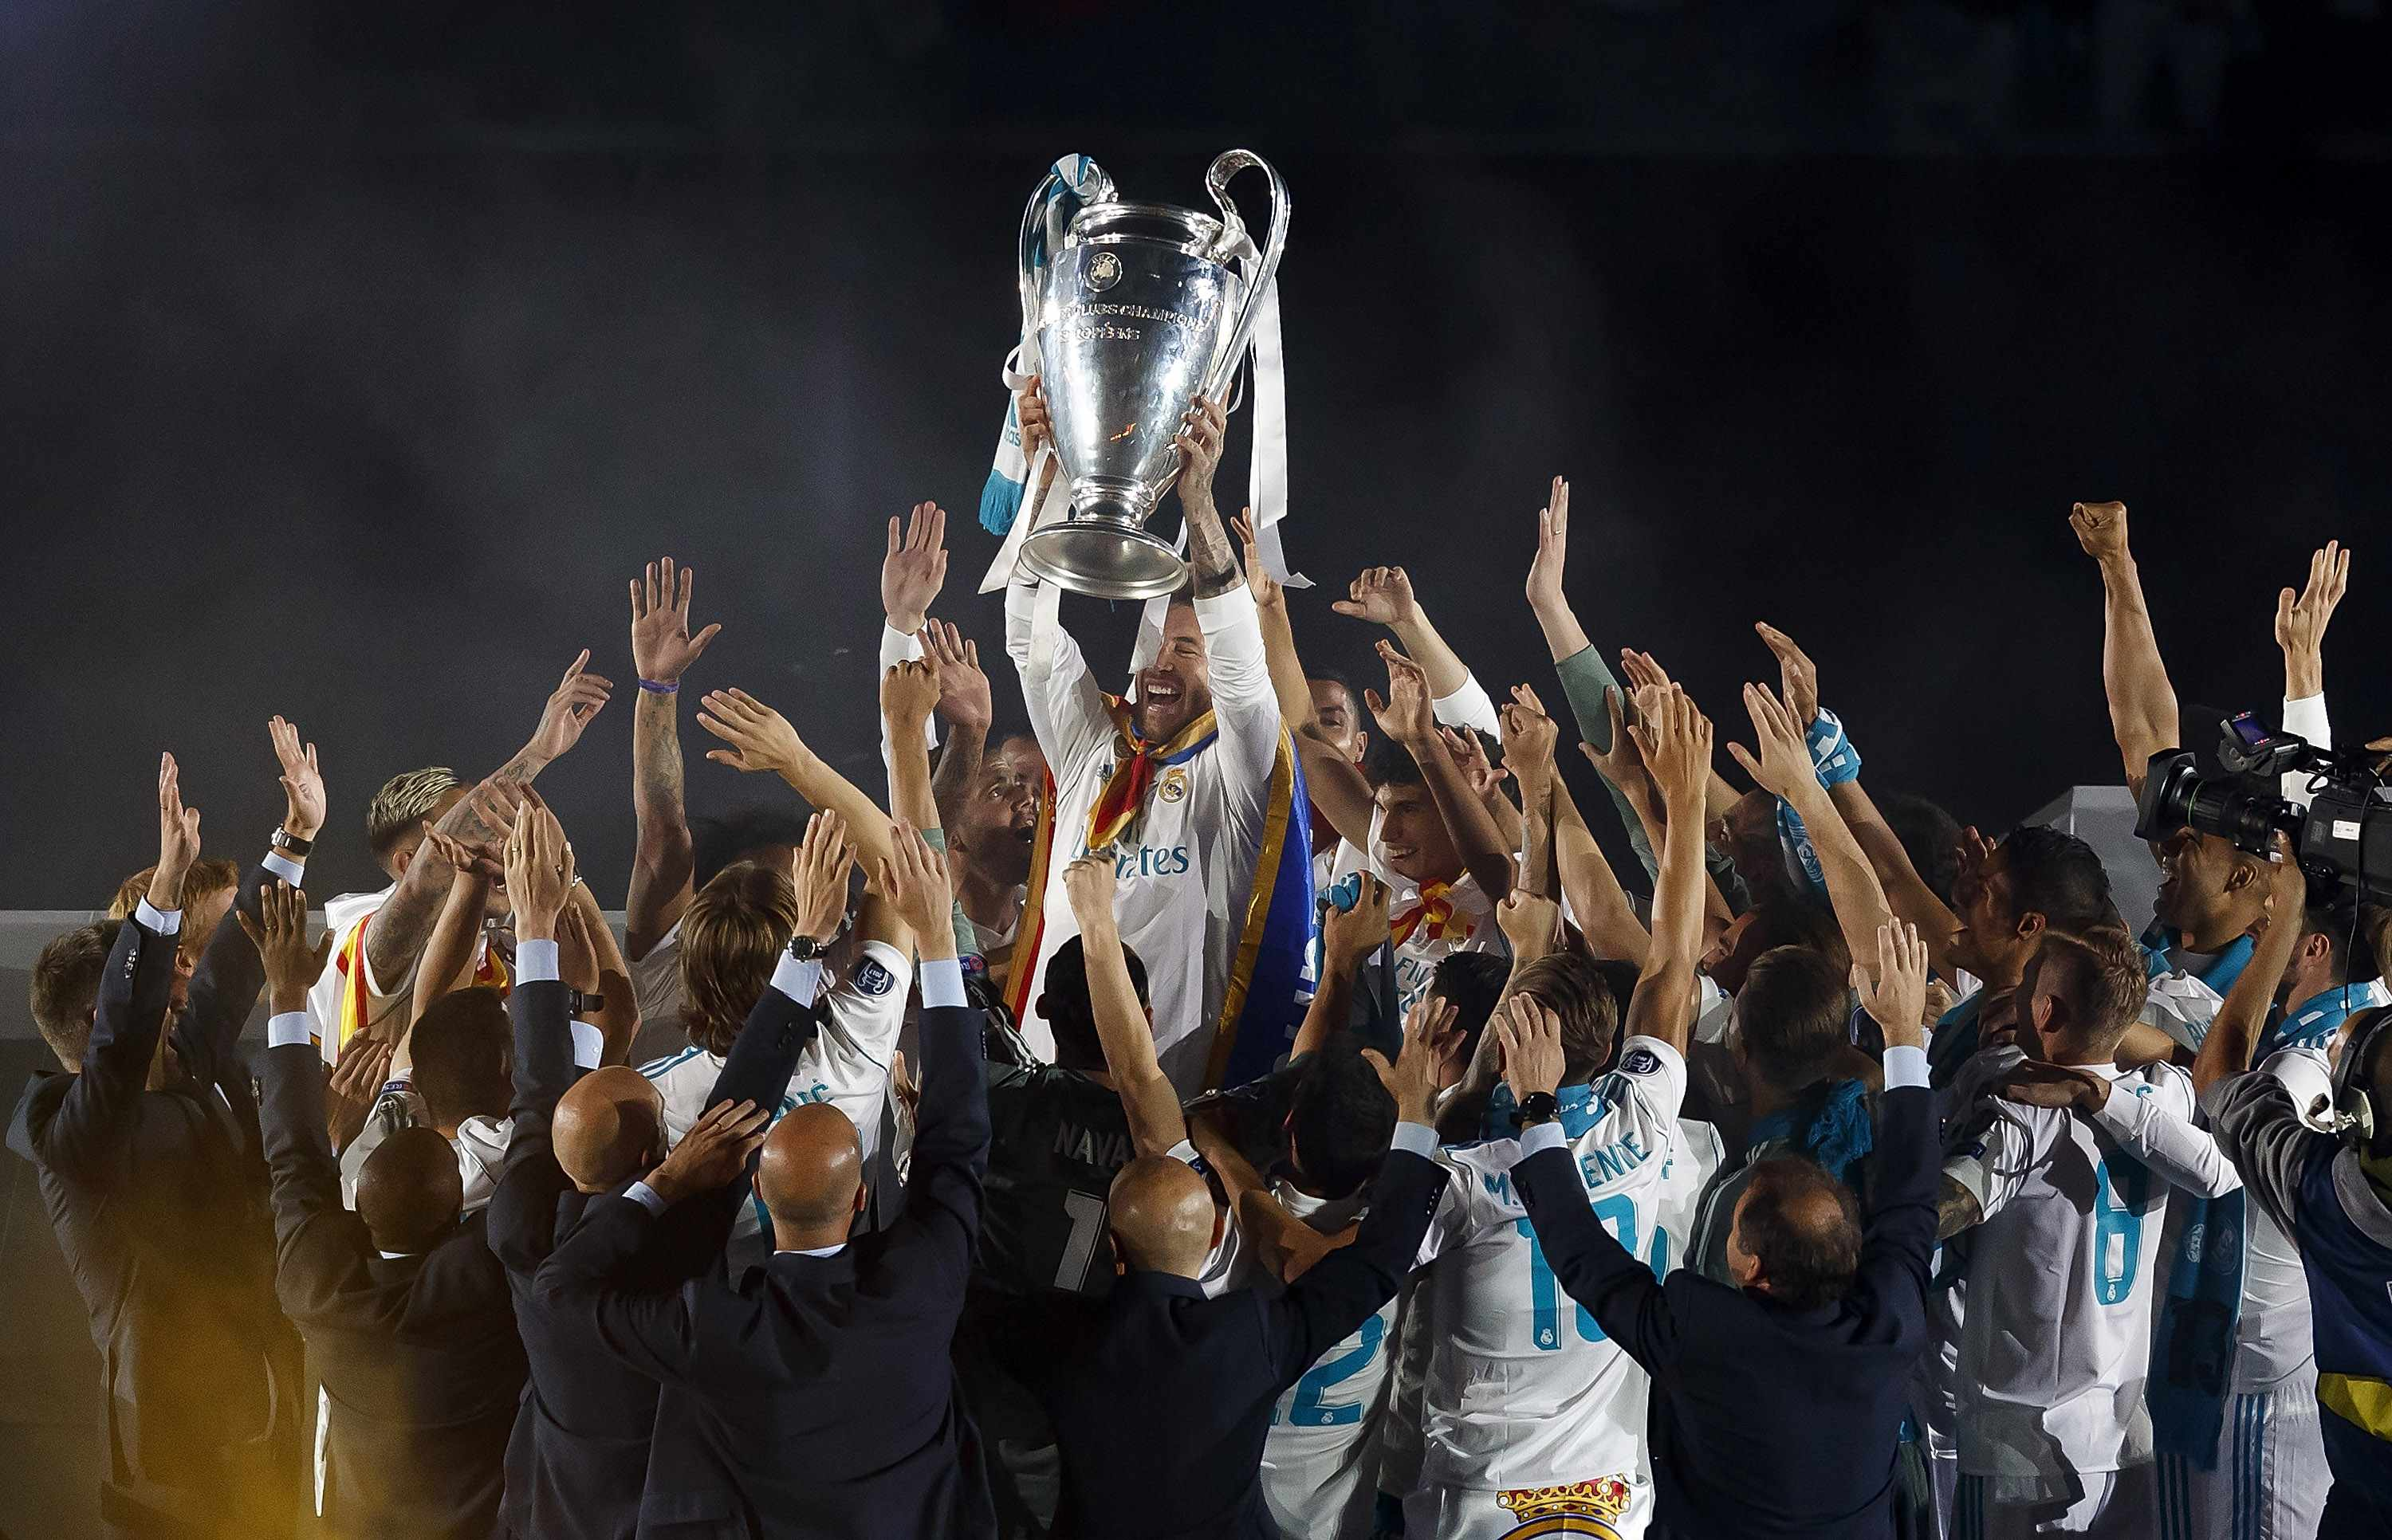 MADRID, SPAIN - MAY 27:  Captain Sergio Ramos of Real Madrid holds up the Champions League trophy with his teammates as they celebrate at Estadio Santiago Bernabeu a day after winning their 13th European Cup and UEFA Champions League Final on May 27, 2018 in Madrid, Spain.  (Photo by Angel Martinez/Real Madrid via Getty Images)